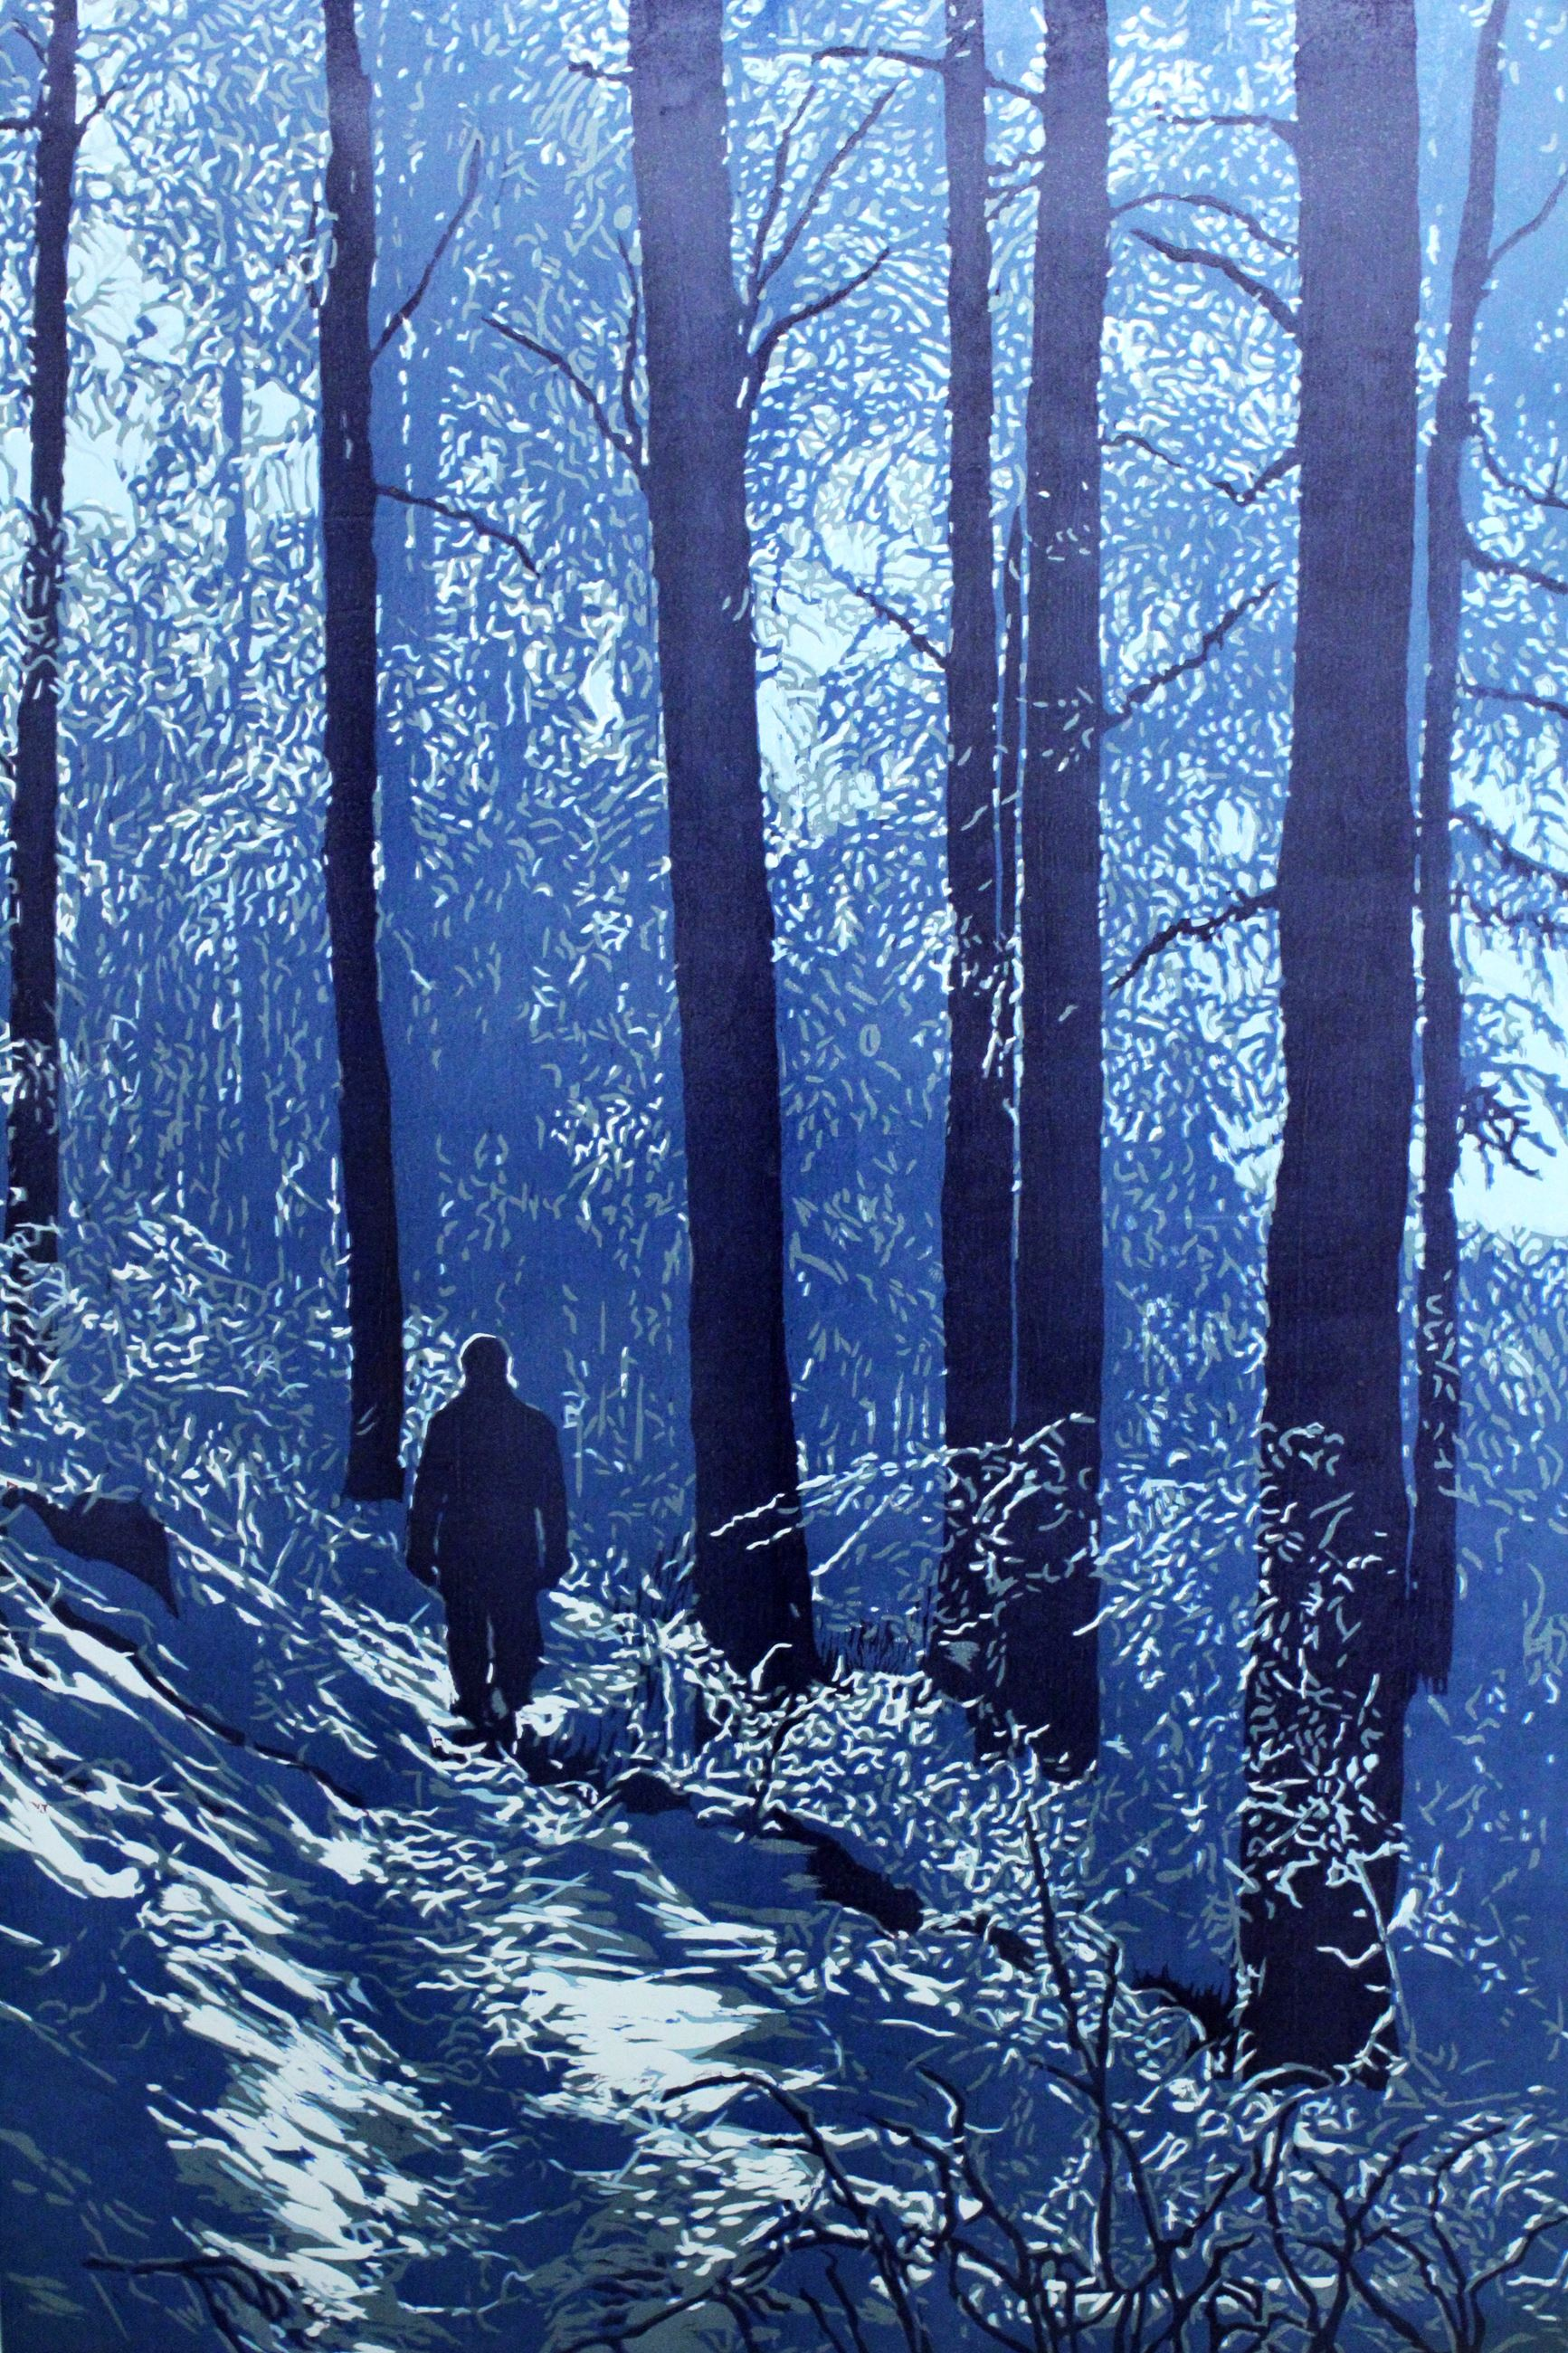 Waldspaziergang (Walk in the Forest) Reduction Woodcut by Katharina Bossmann